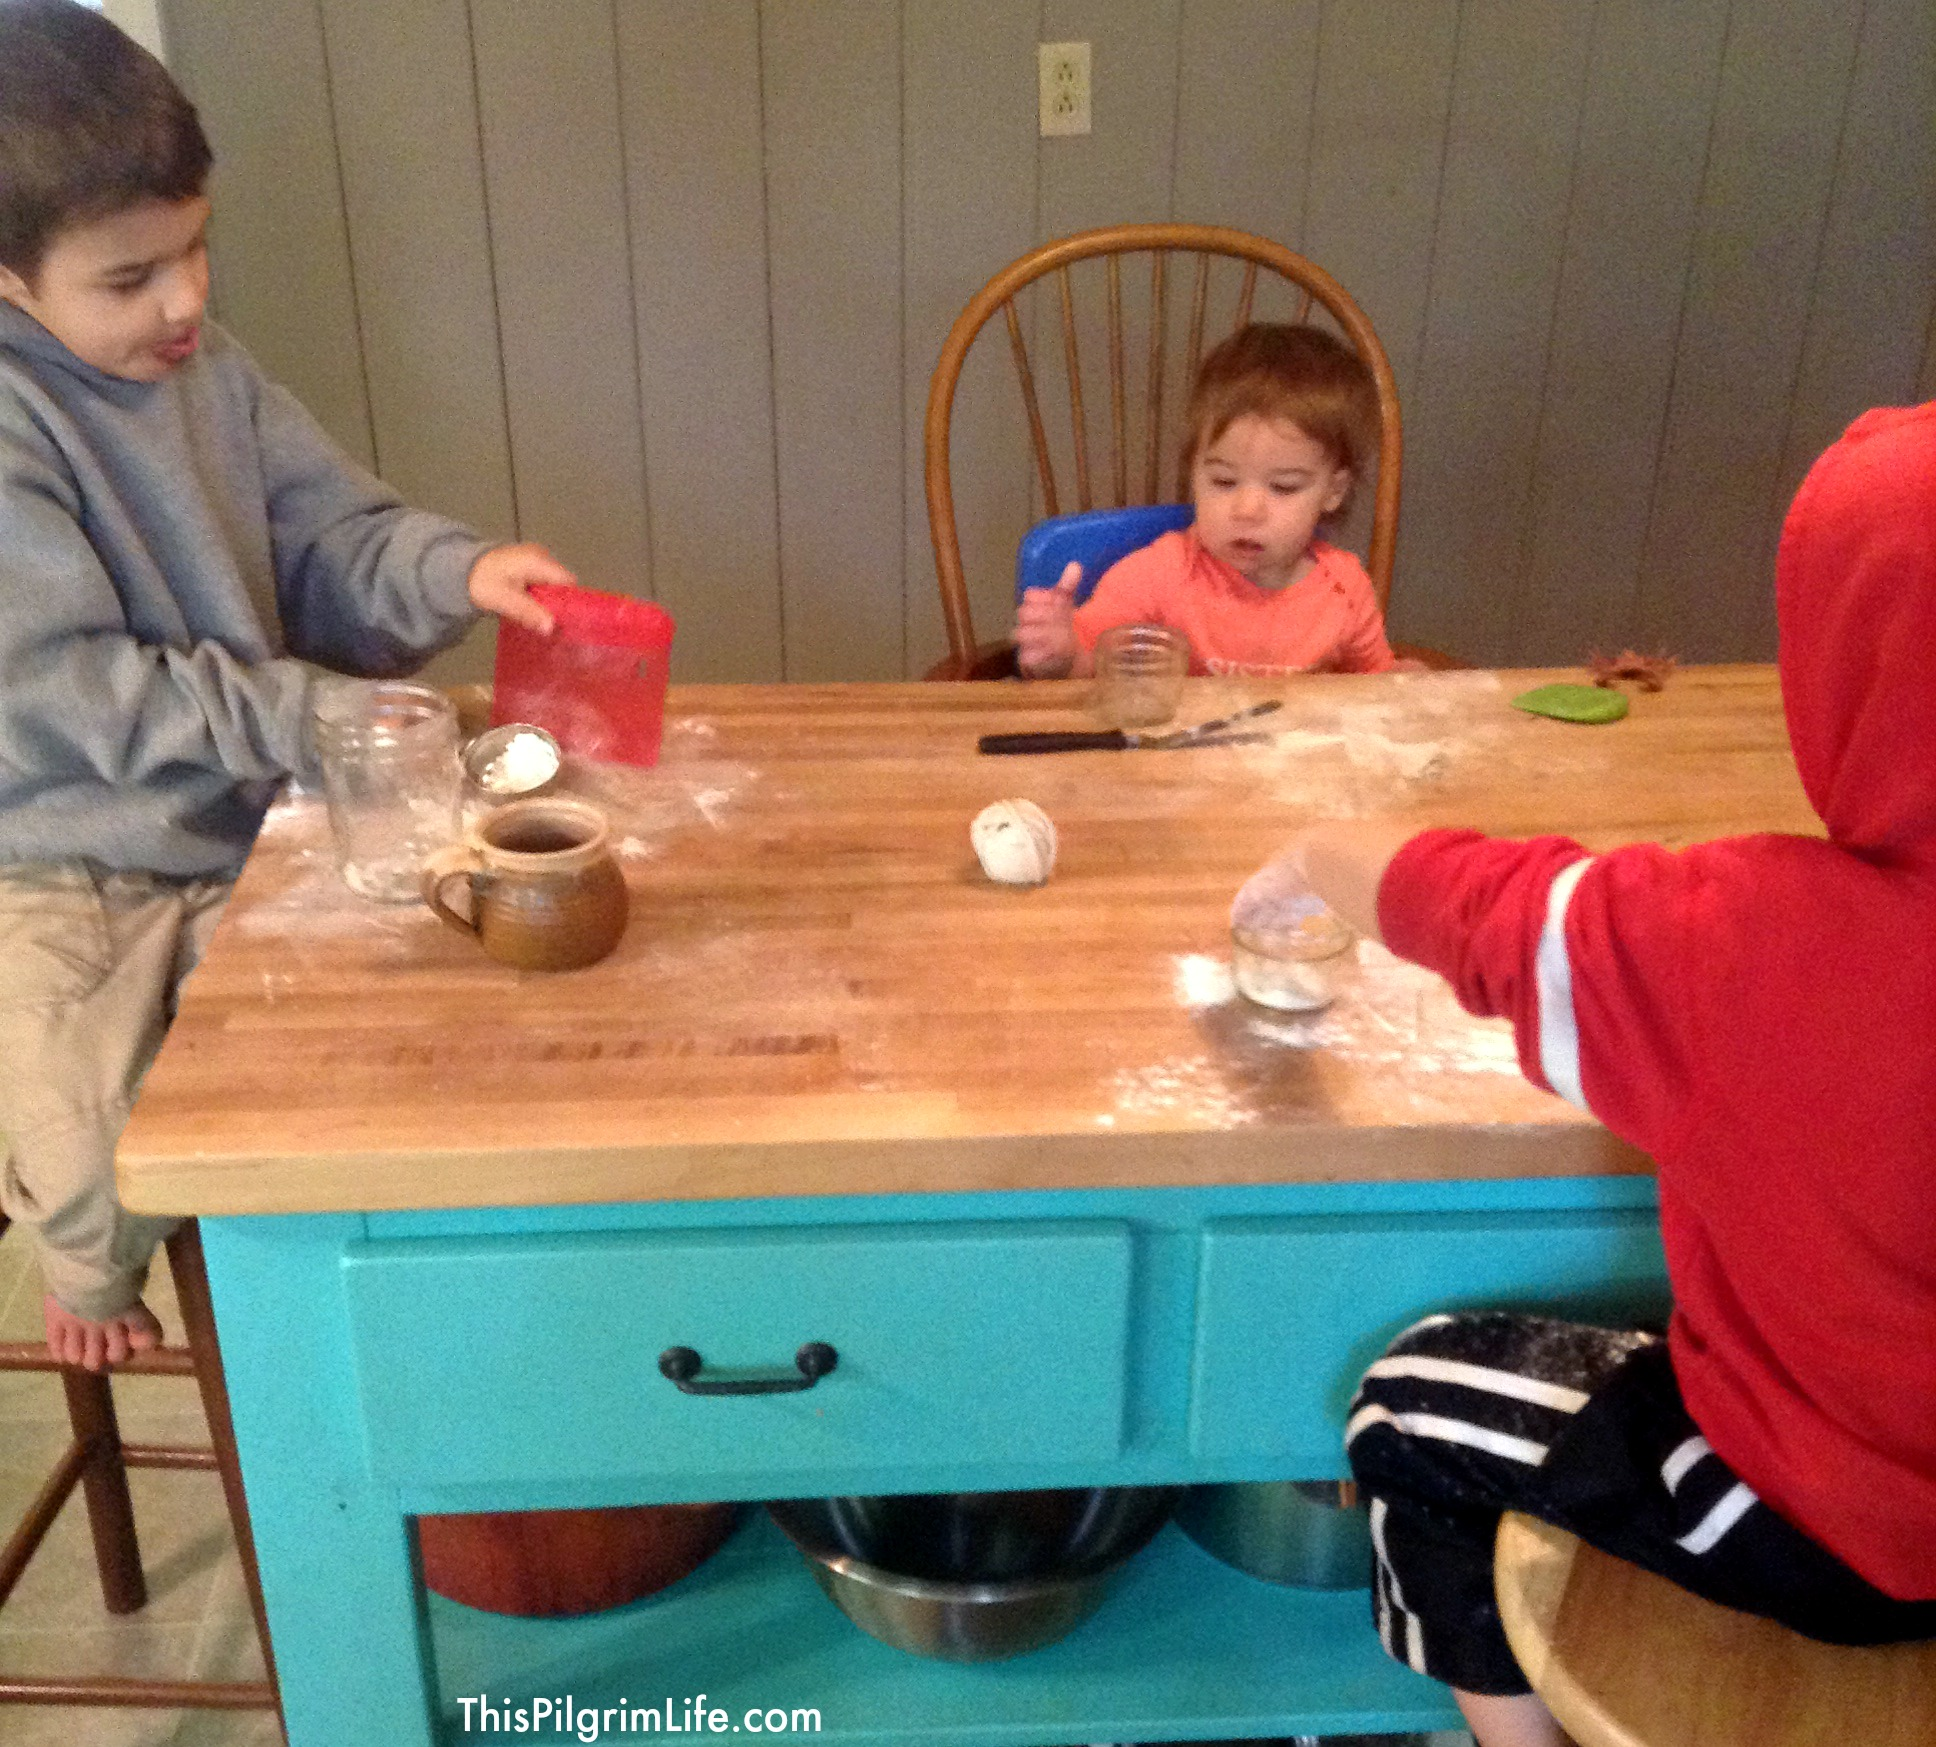 How do you keep your kids busy while you make dinner? Here's one idea that keeps kids busy for a long time!